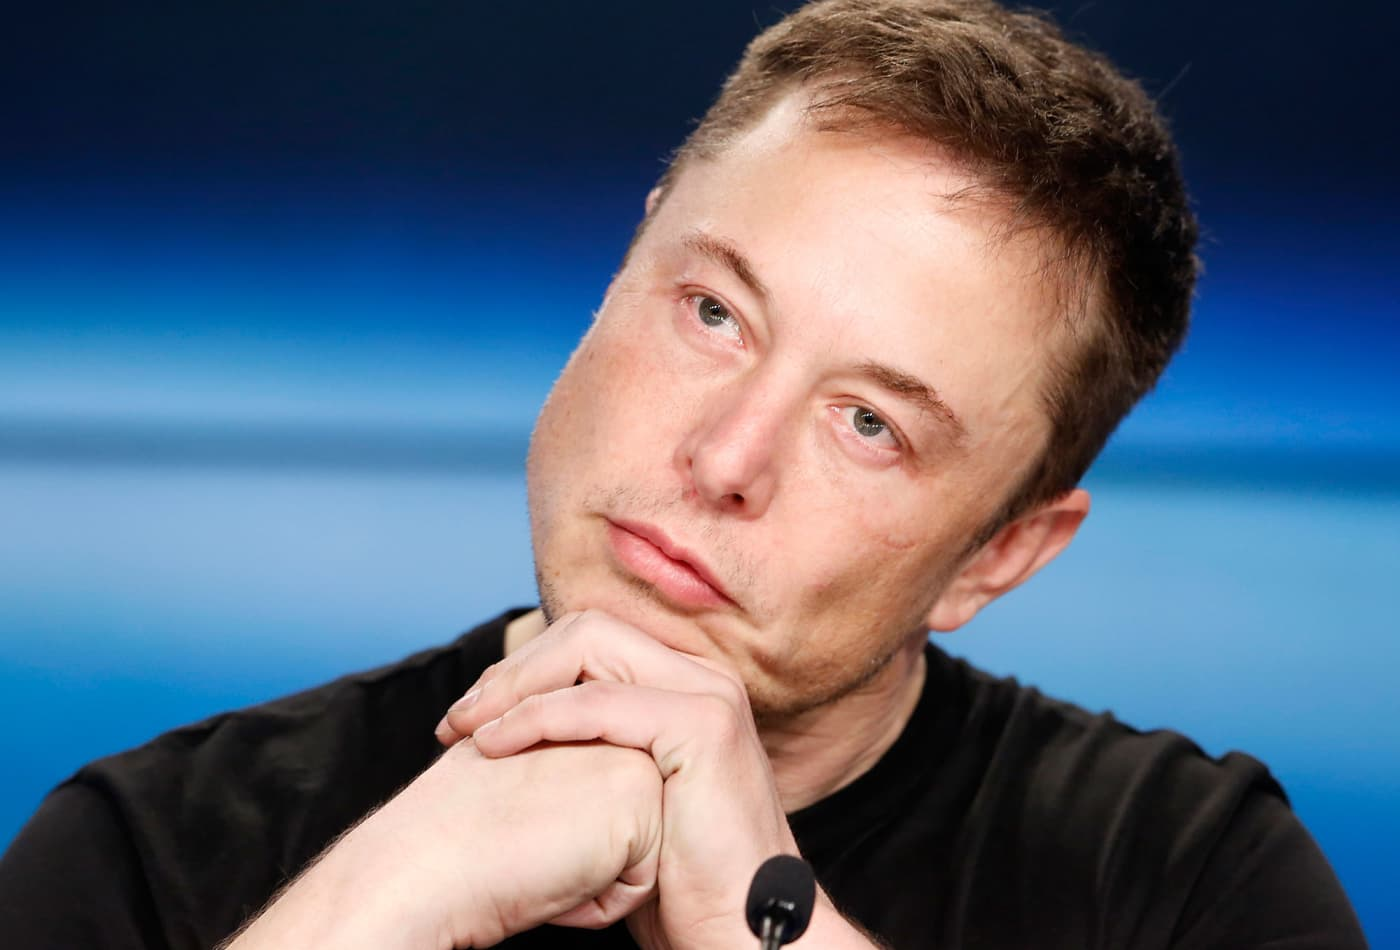 Elon Musk's $20 million SEC fine is less than 0 1% of his